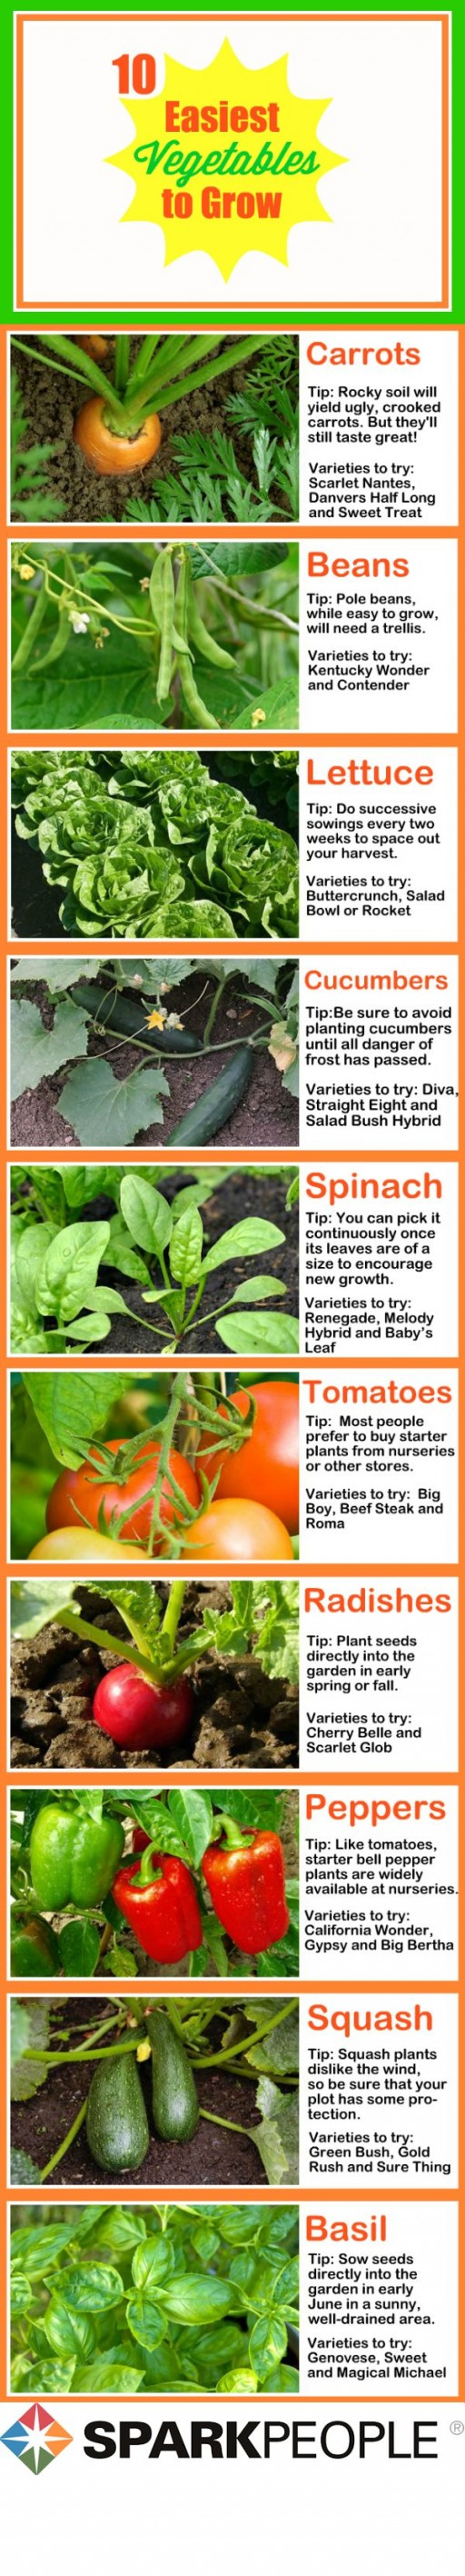 Top 10 easiest vegetables to grow at home list